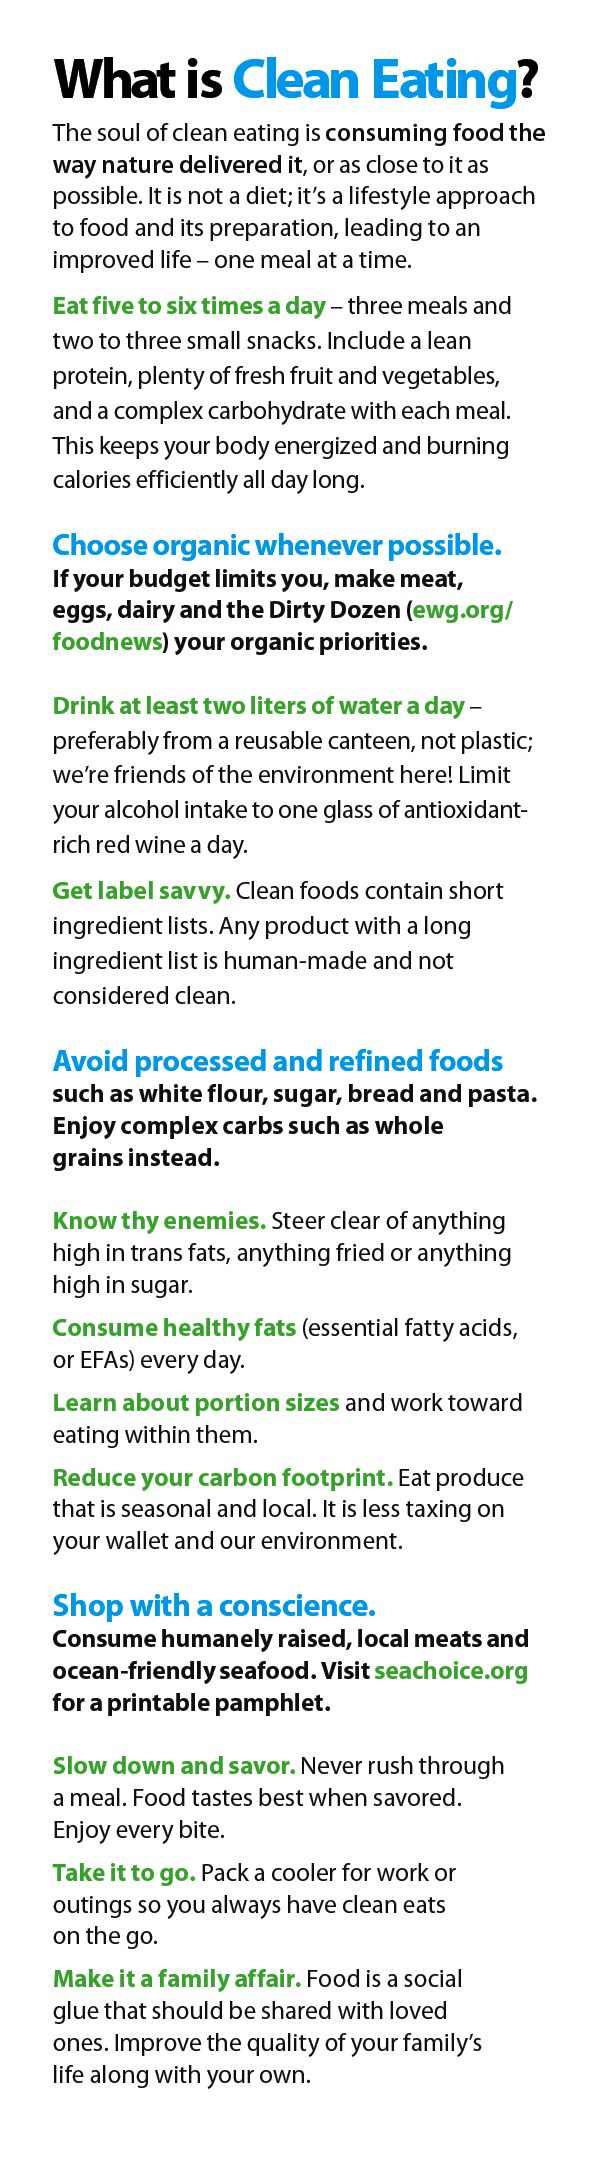 Confused about clean eating? Here are the guidelines to follow. http://www.cleaneatingmag.com/food-health/food-and-health-news/what-is-clean-eating/